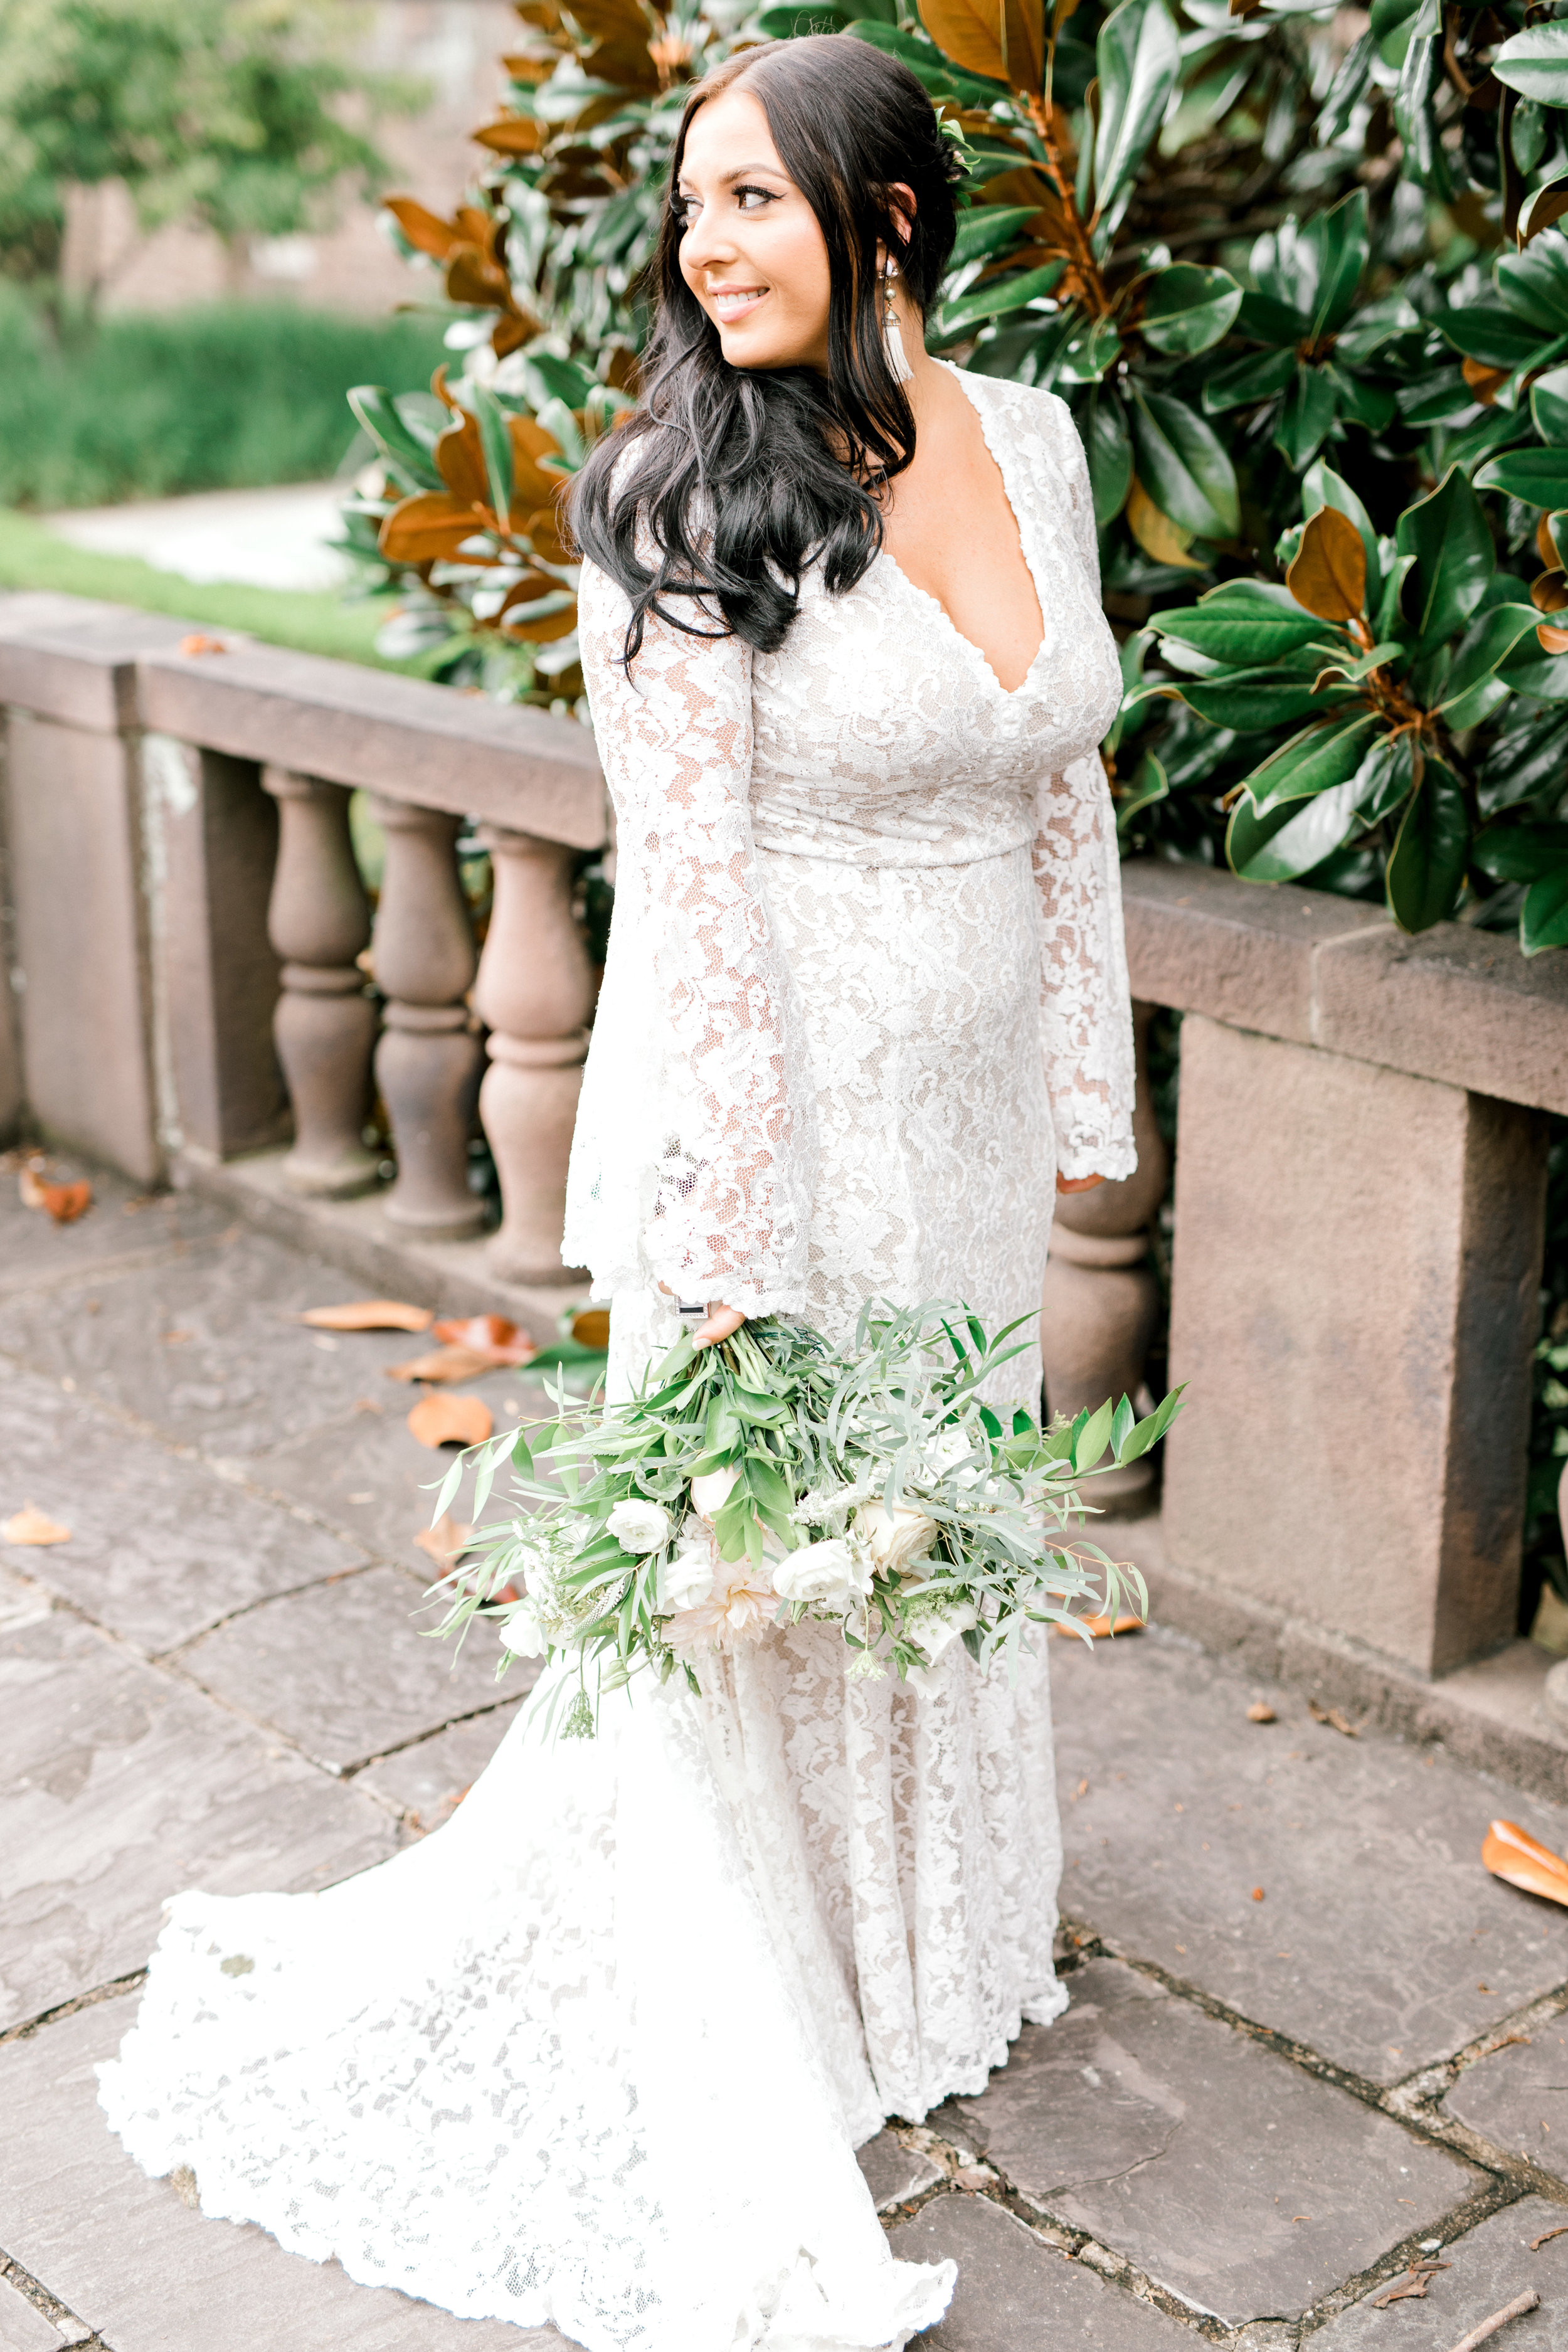 We love the modern feel of this lace BHLDN gown from Alicia's bright boho chic Tyler Gardens wedding in Bucks County